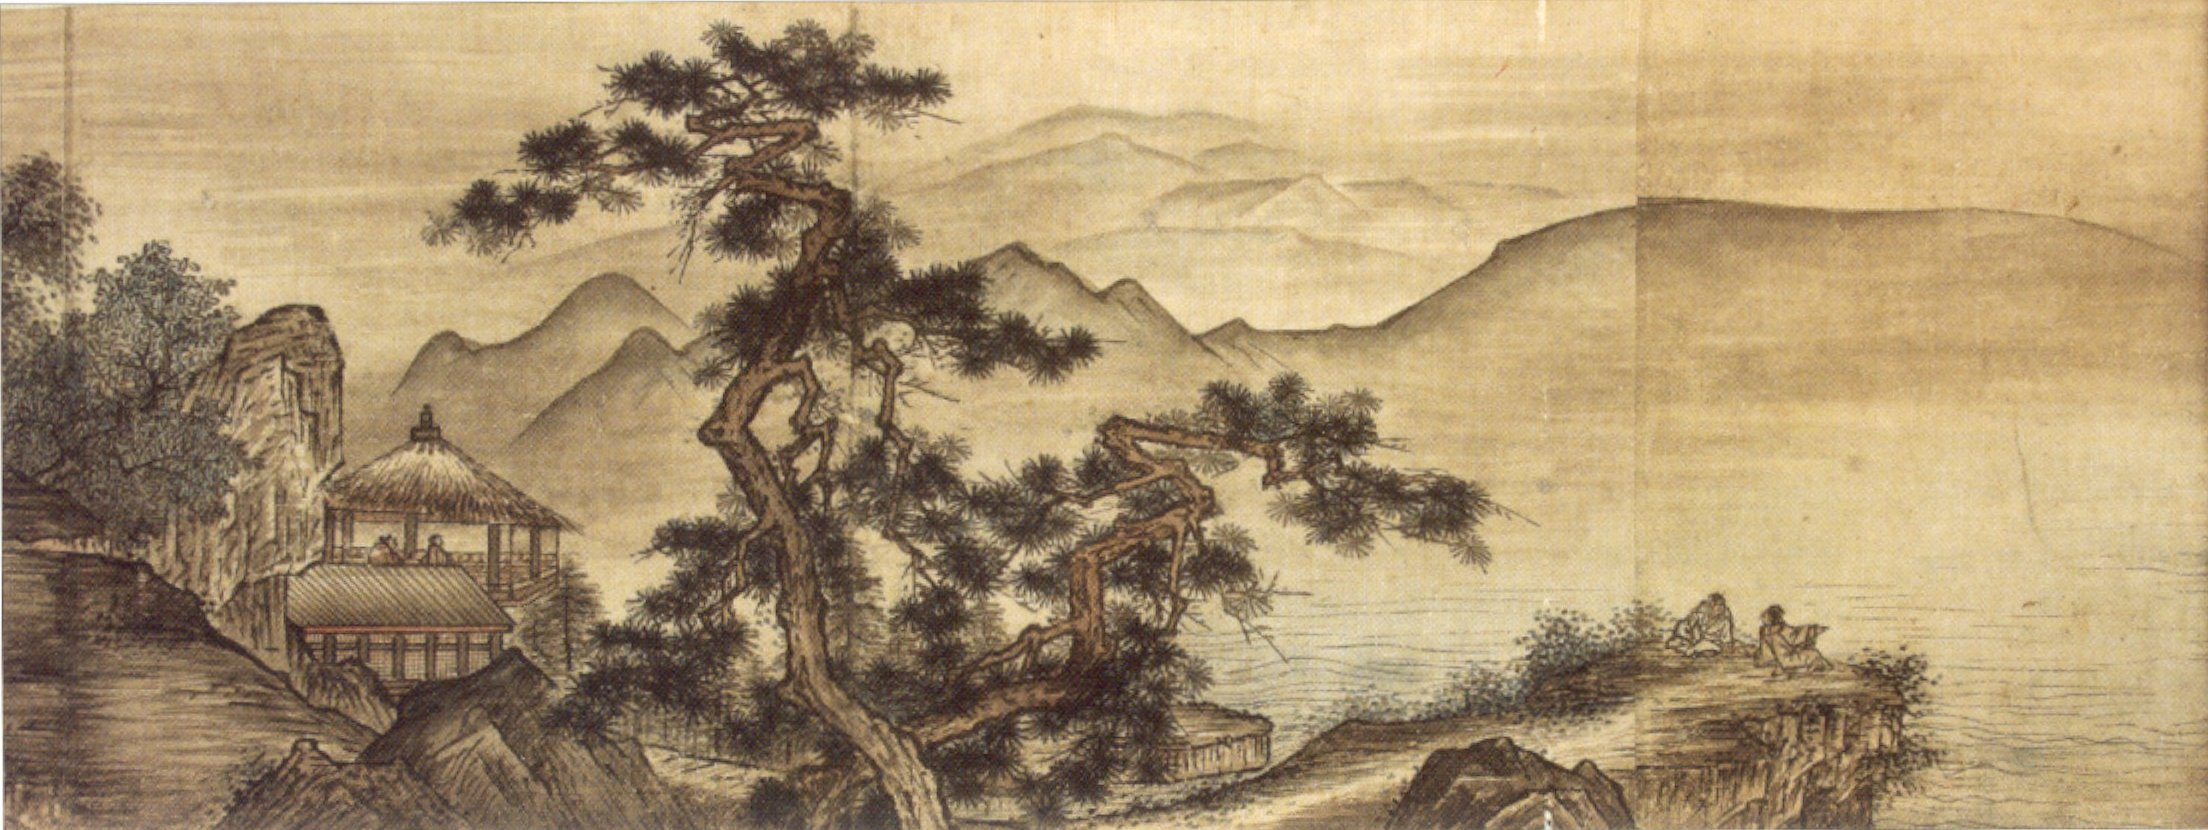 File:Landscape painting in the Chinese style by Shûgetsu ...